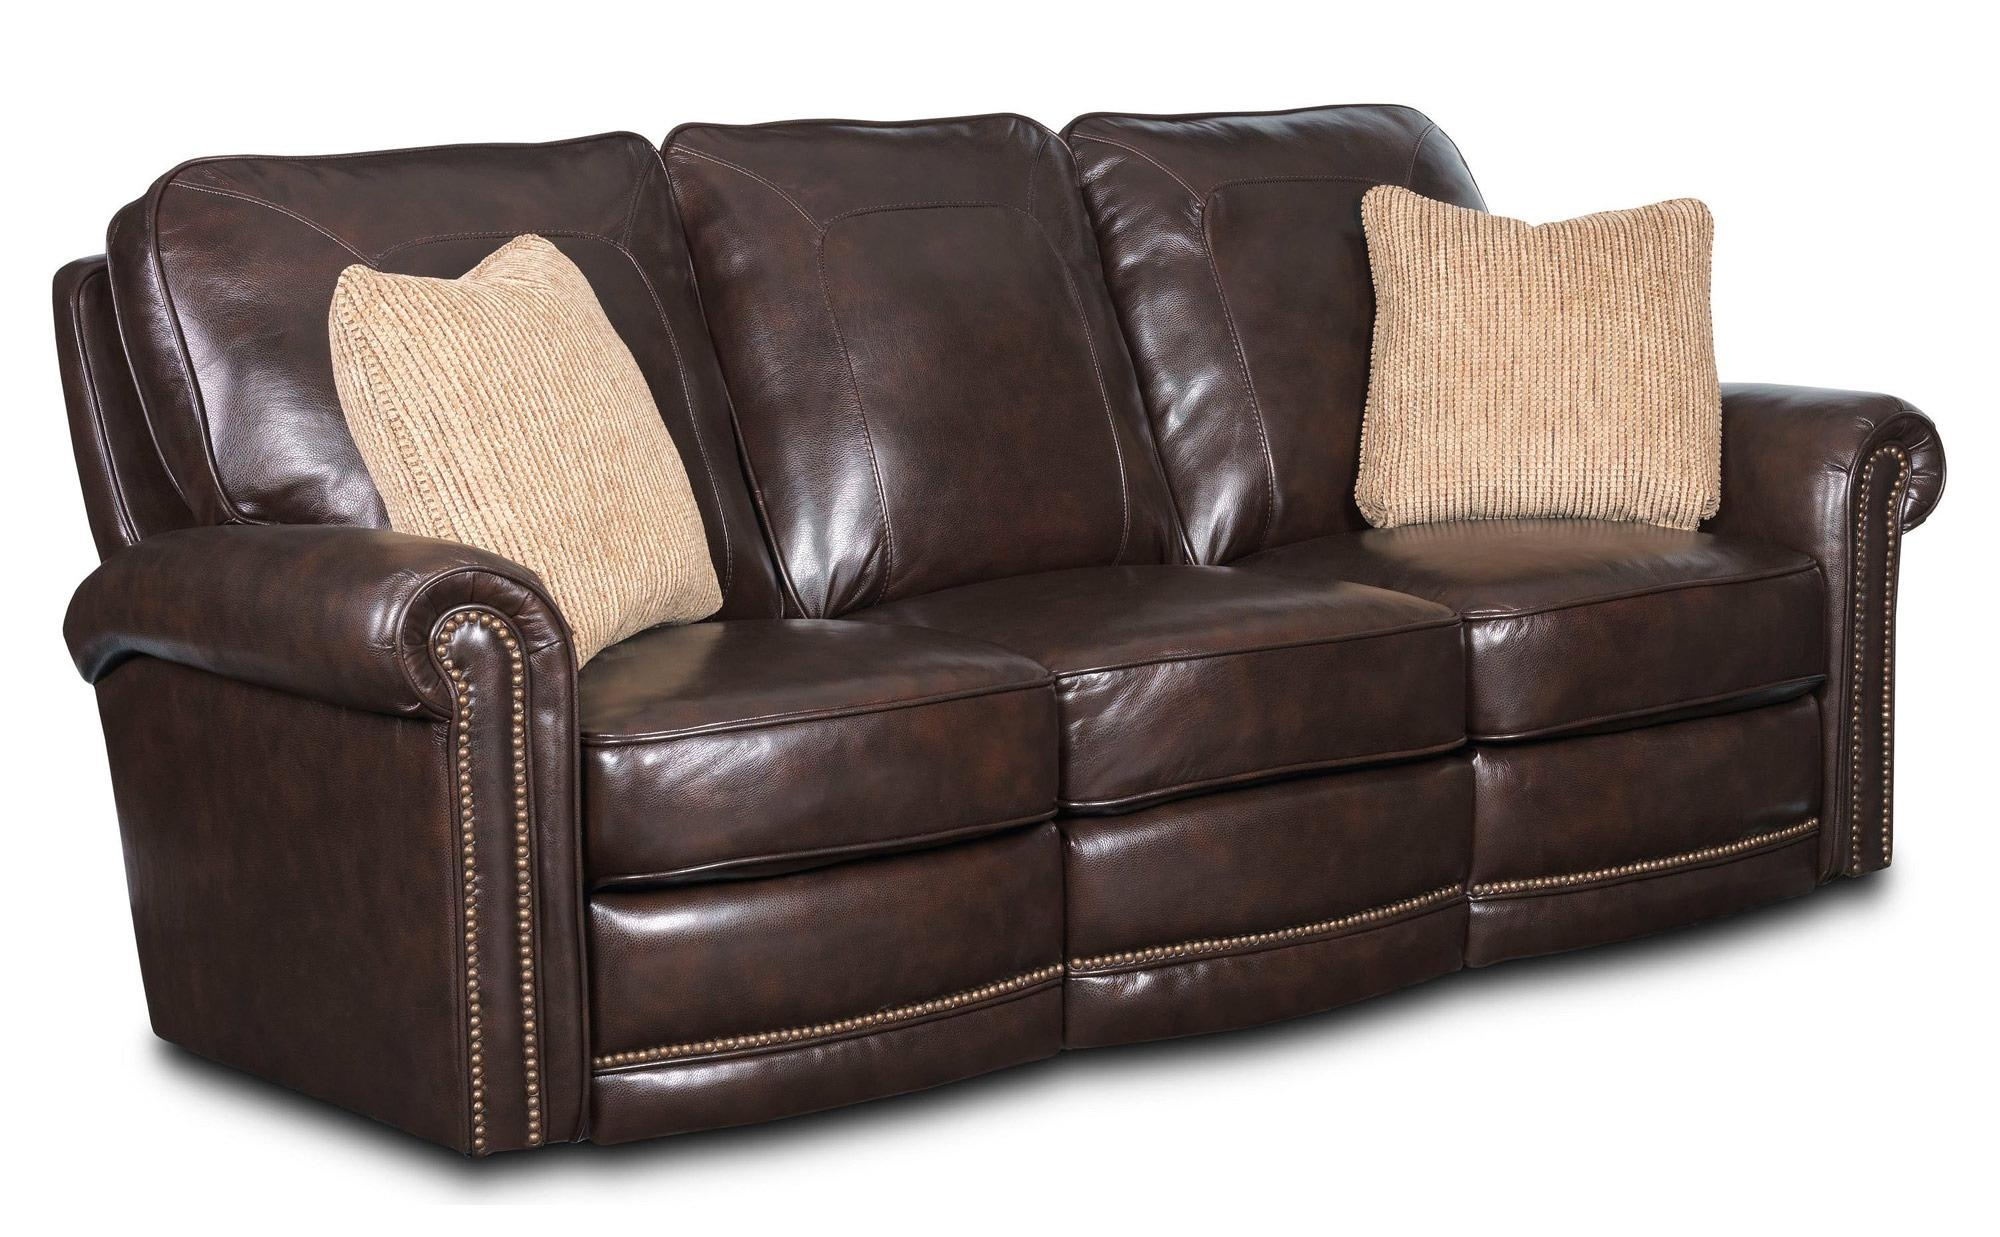 Broyhill Hamilton Leather Sofa | Sofas Decoration Intended For Broyhill Reclining Sofas (Image 7 of 20)